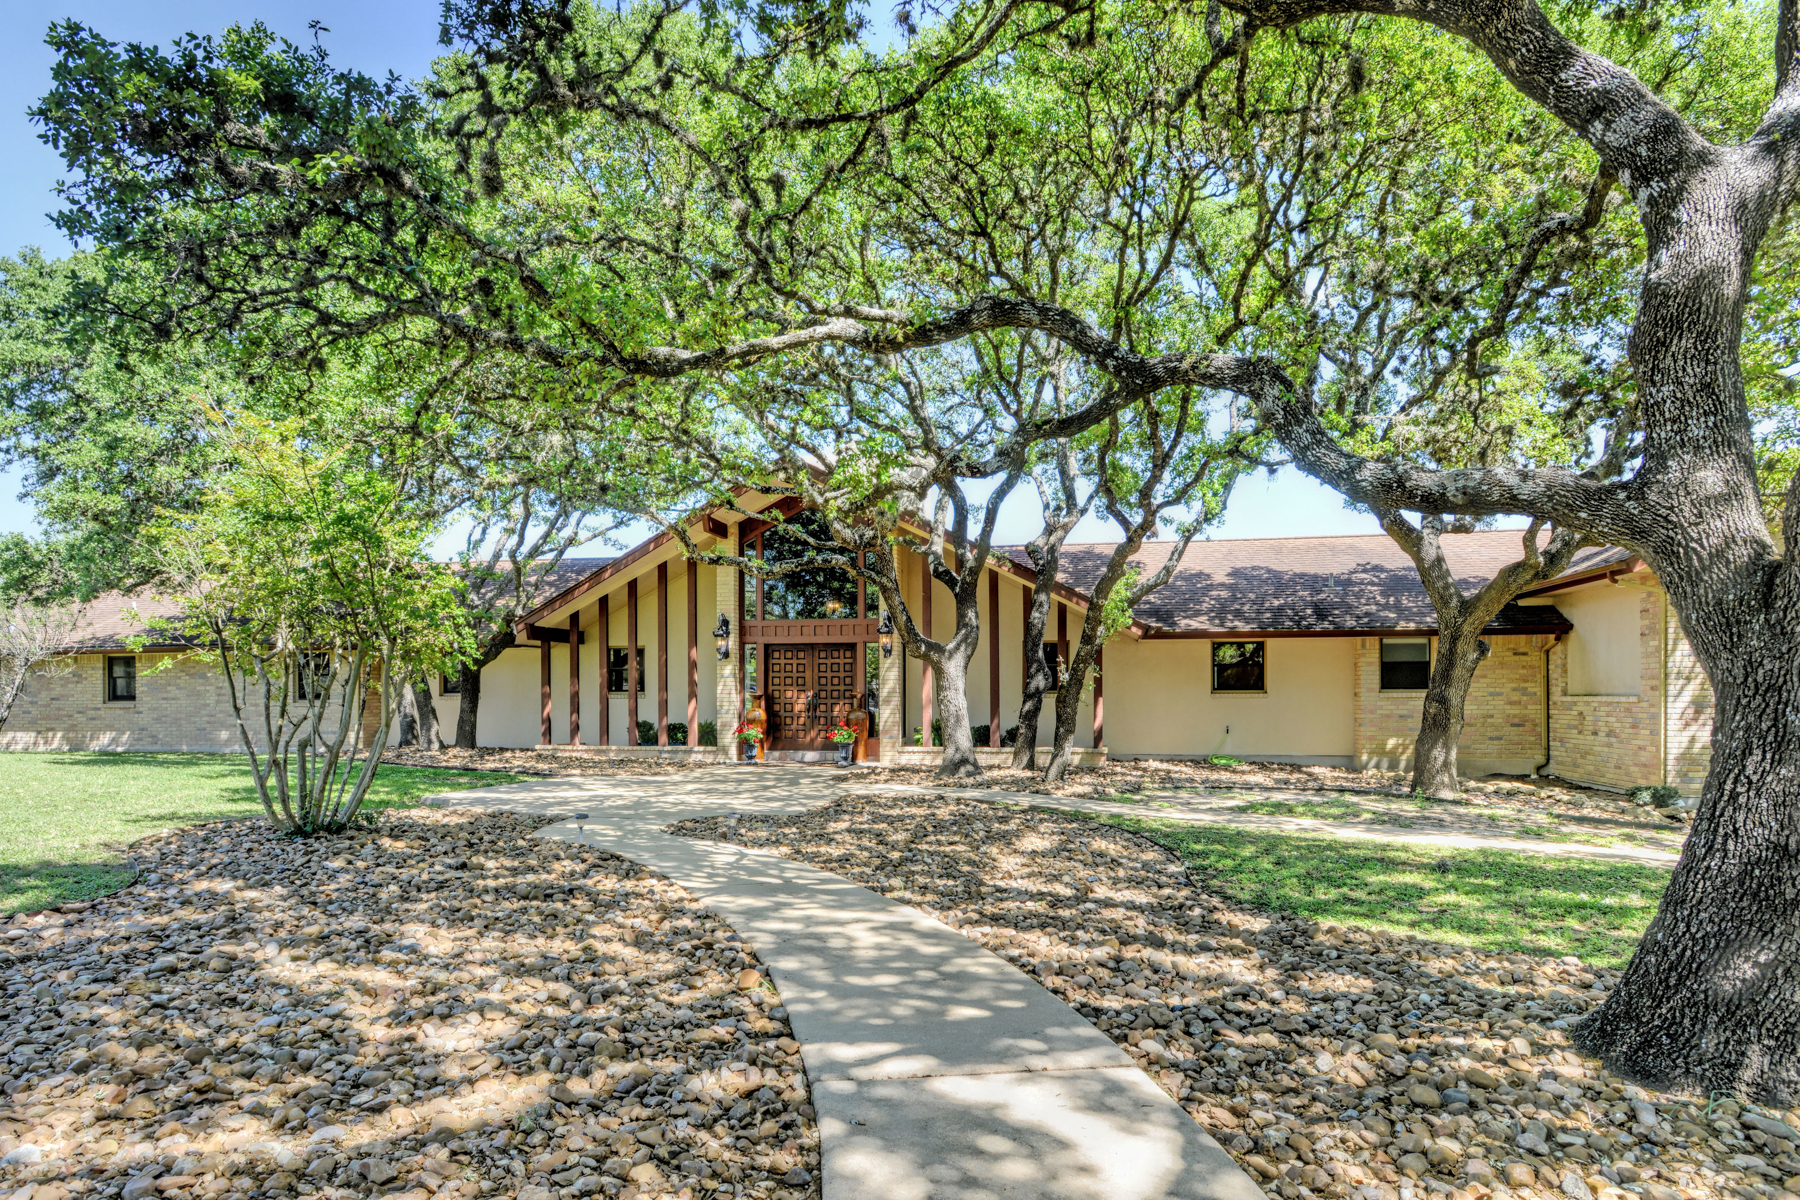 Single Family Home for Sale at Pristine Equine Property in Fair Oaks Ranch 28486 Preakness Ln Fair Oaks Ranch, Texas 78015 United States